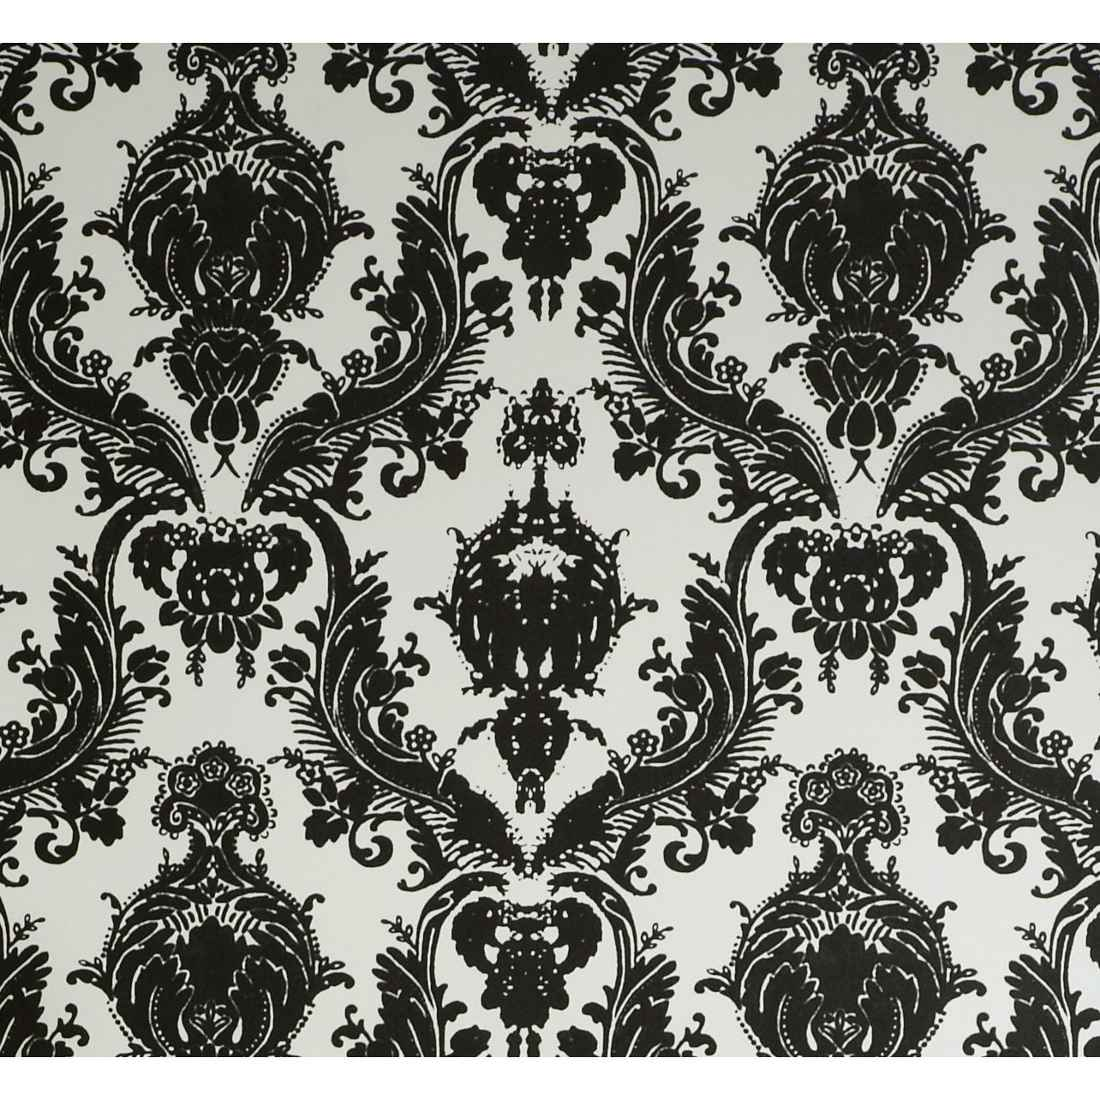 Designs Damsel Self Adhesive Black and White Temporary Wallpaper 1100x1100